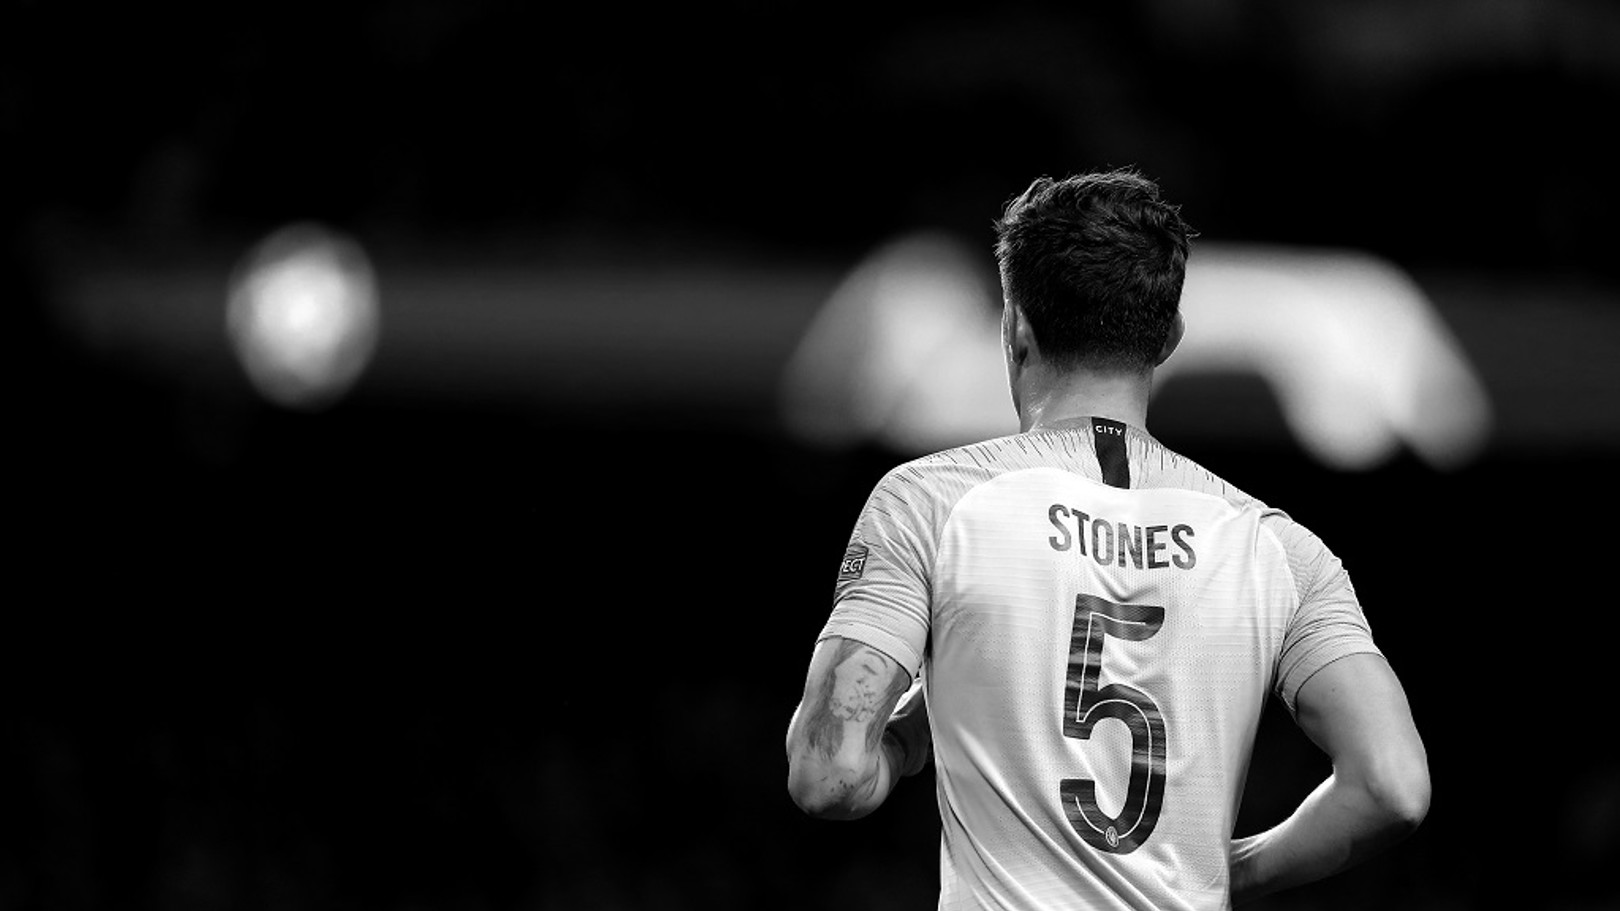 CLASS ACT: Can John Stones follow in the great Bobby Moore's footsteps?